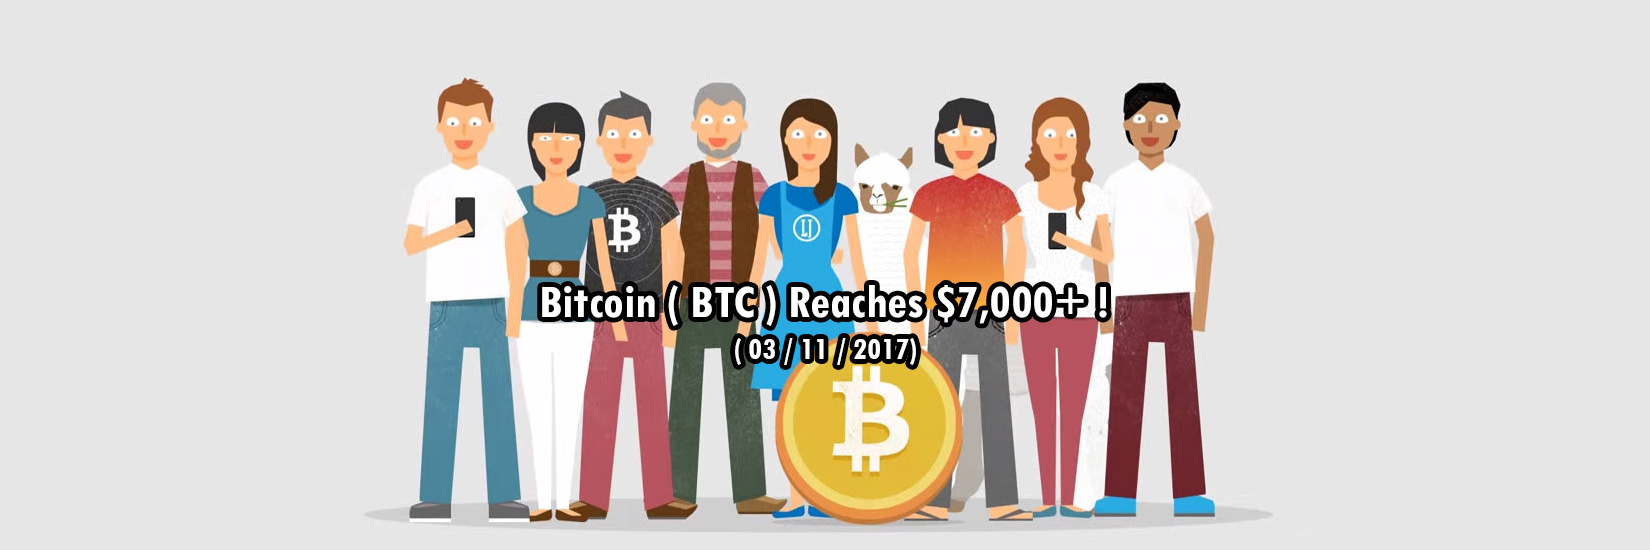 bitcoin-price-reaches-7000-dollars-for-the-first-time-sinhala-cryptocurrency-article-by-prathilaba